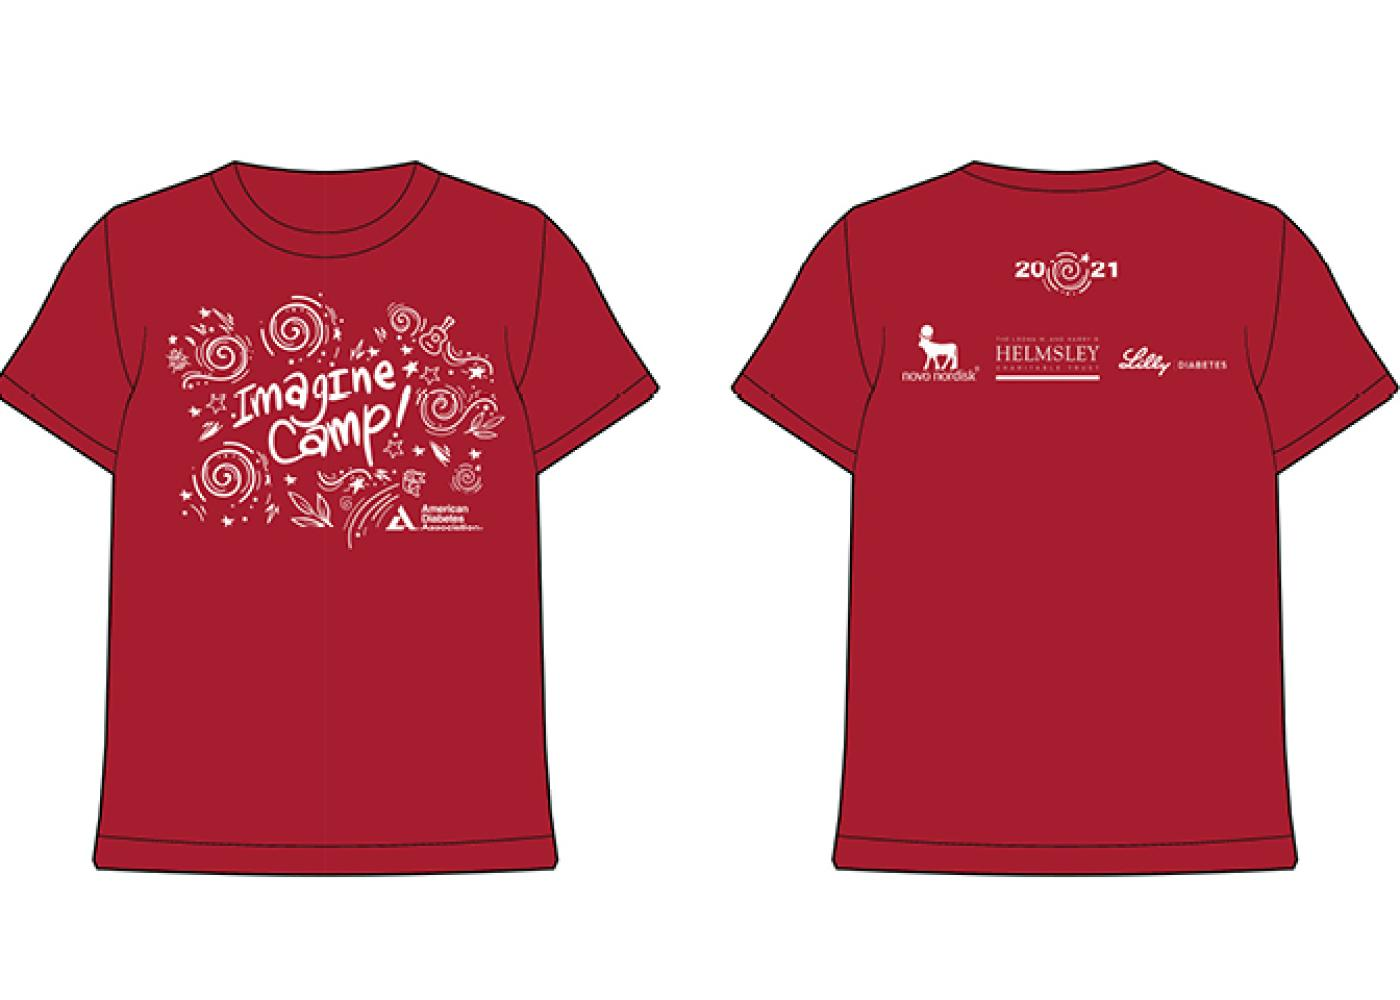 Front and back of Imagine Camp short sleeve shirt